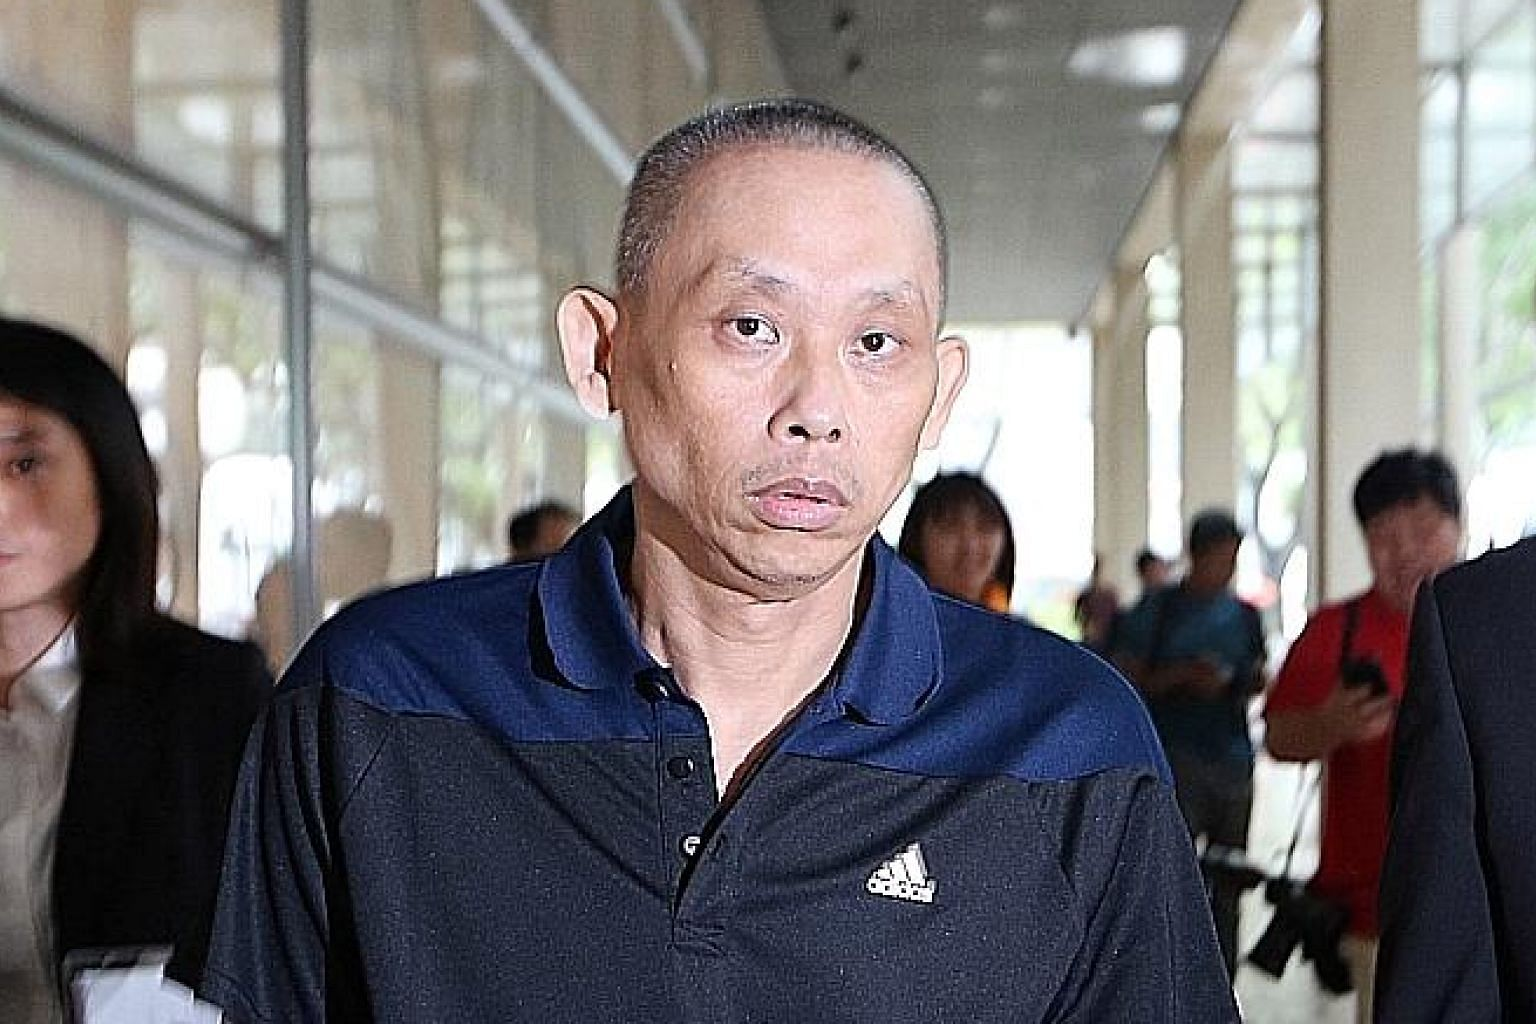 """Dan Tan Seet Eng (seen here in a 2015 photo), was once named by Interpol as """"the leader of the world's most notorious match-fixing syndicate"""". He became known to European investigators around April 2011, after he was accused by Singaporean fugitive a"""